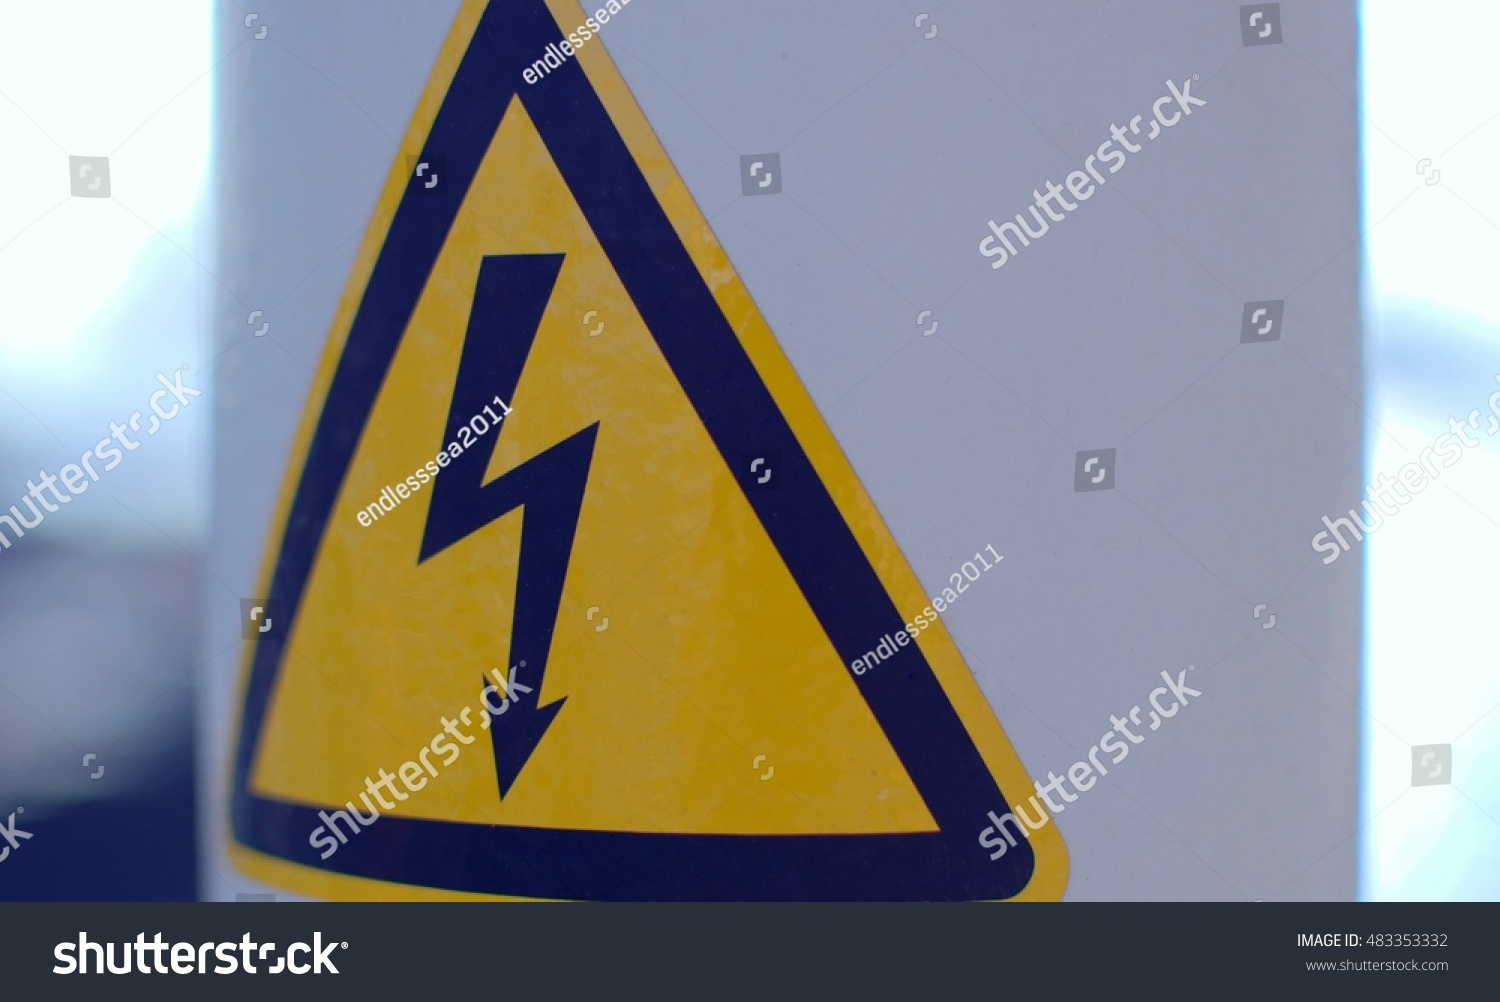 Royalty Free Danger Electricity Voltage High Sign 483353332